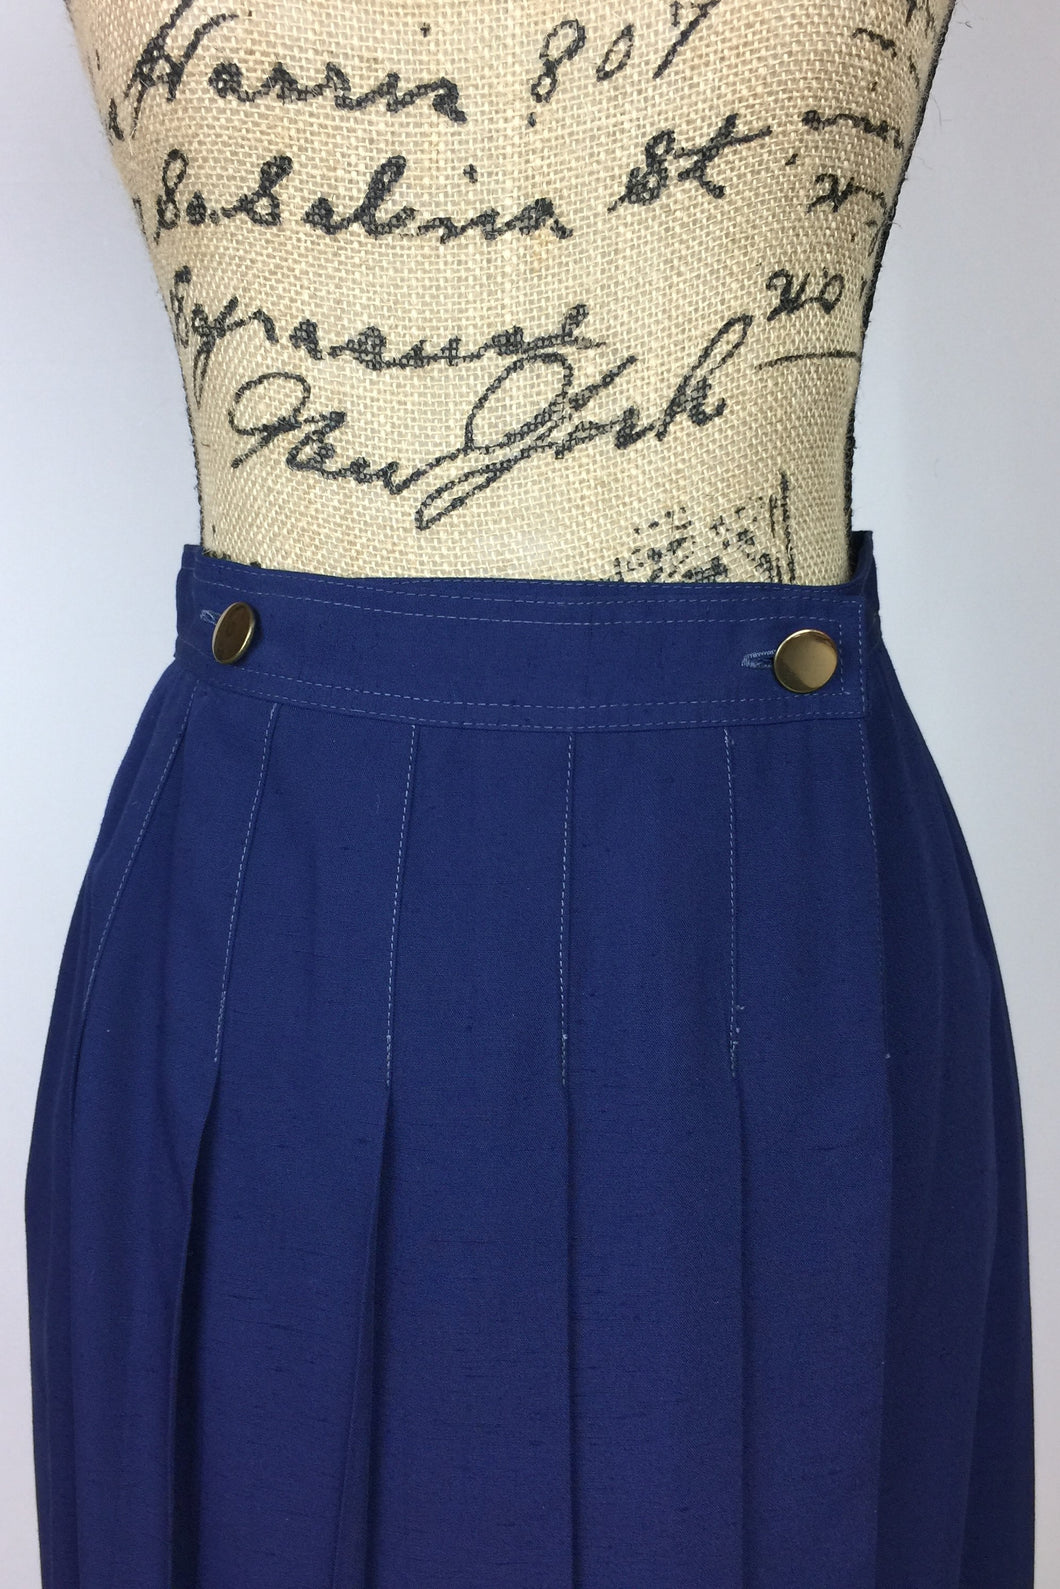 The Chaus Sailor Skirt - M